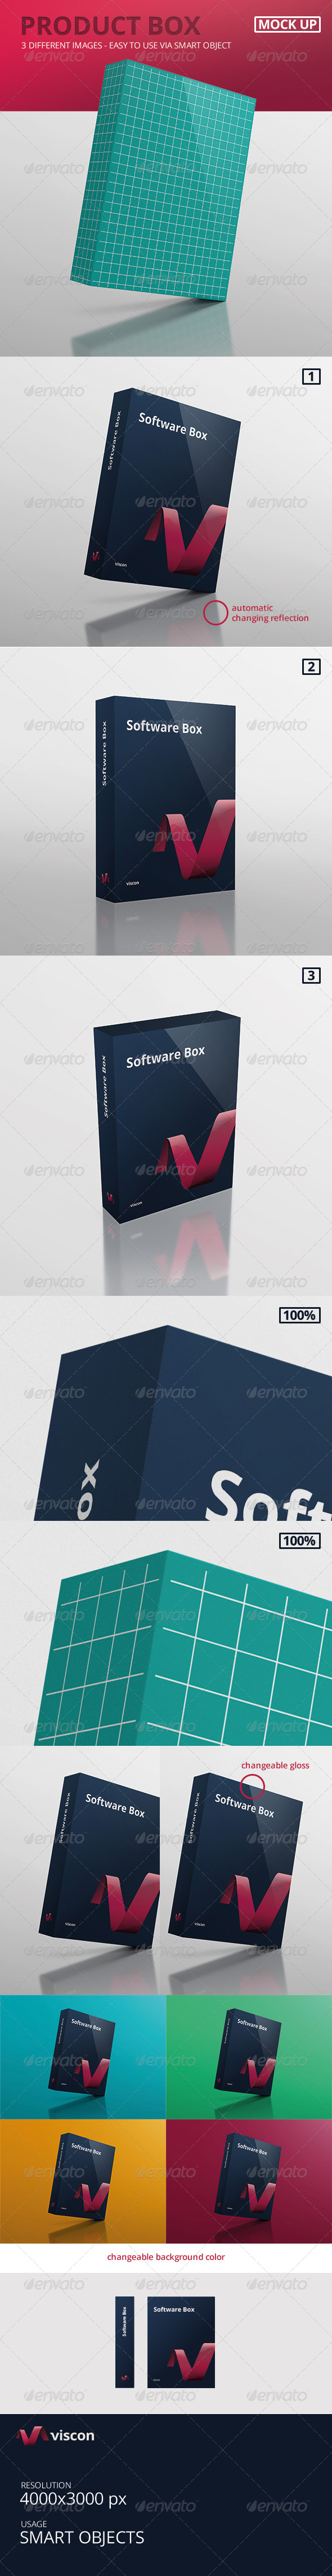 GraphicRiver Product Box Mock-Up 7721714